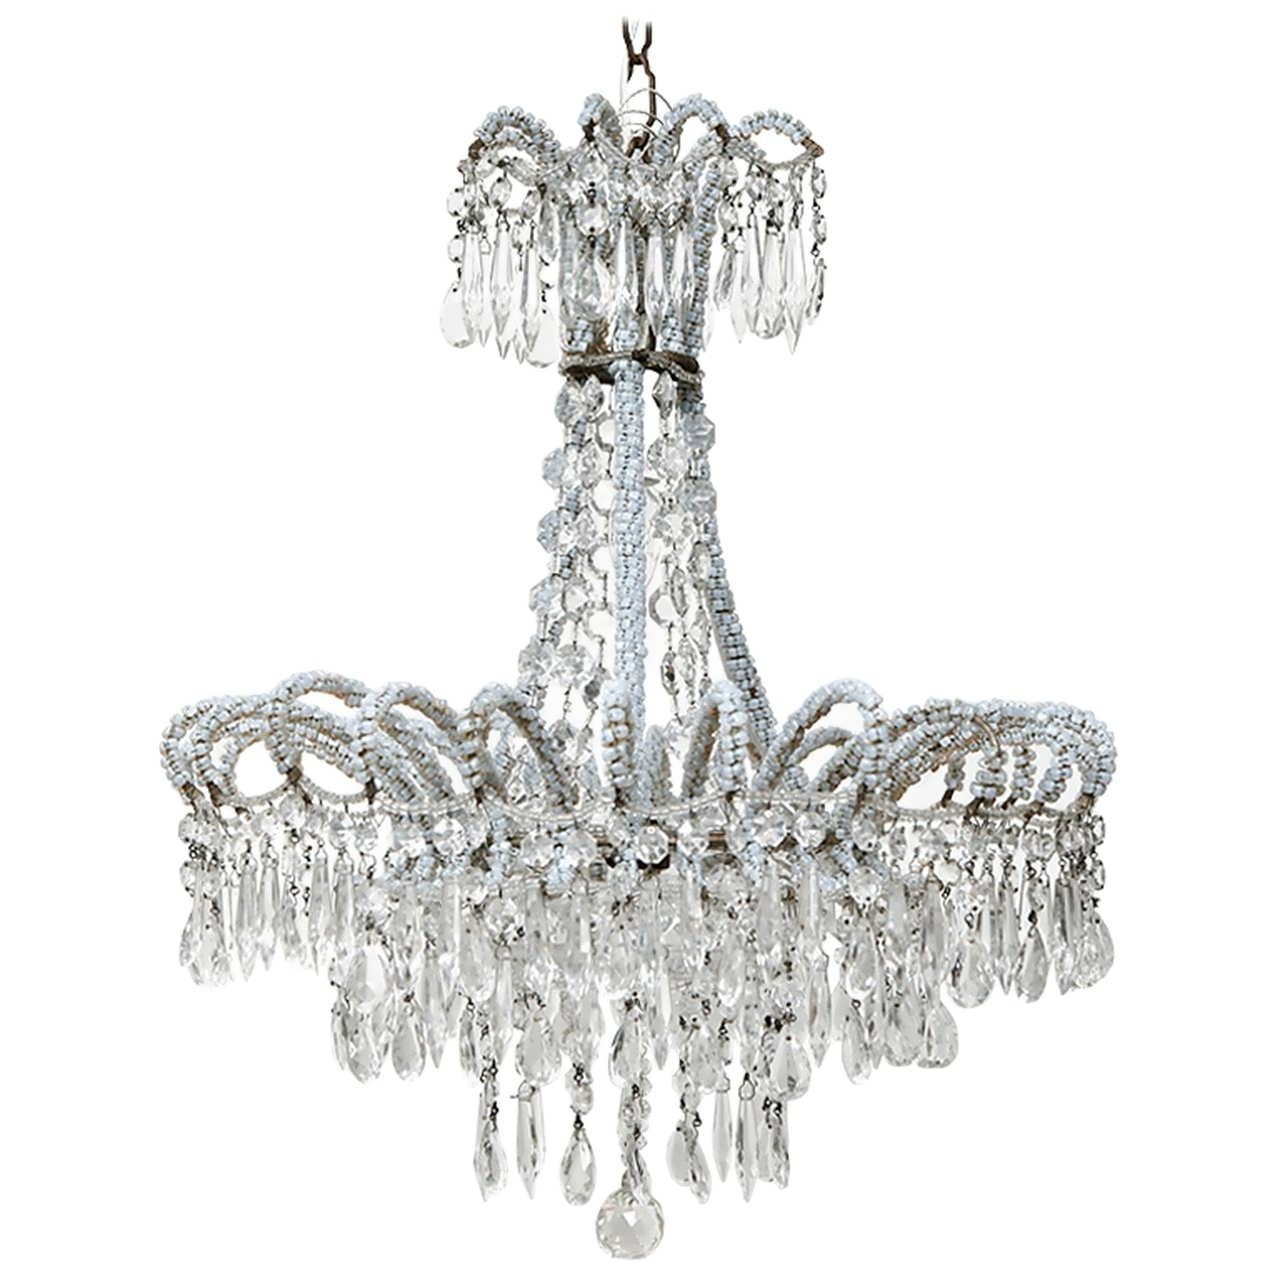 Best And Newest Chandelier : Orb Chandelier Candle Chandelier Italian Chandelier Inside Italian Chandelier Style (View 3 of 15)